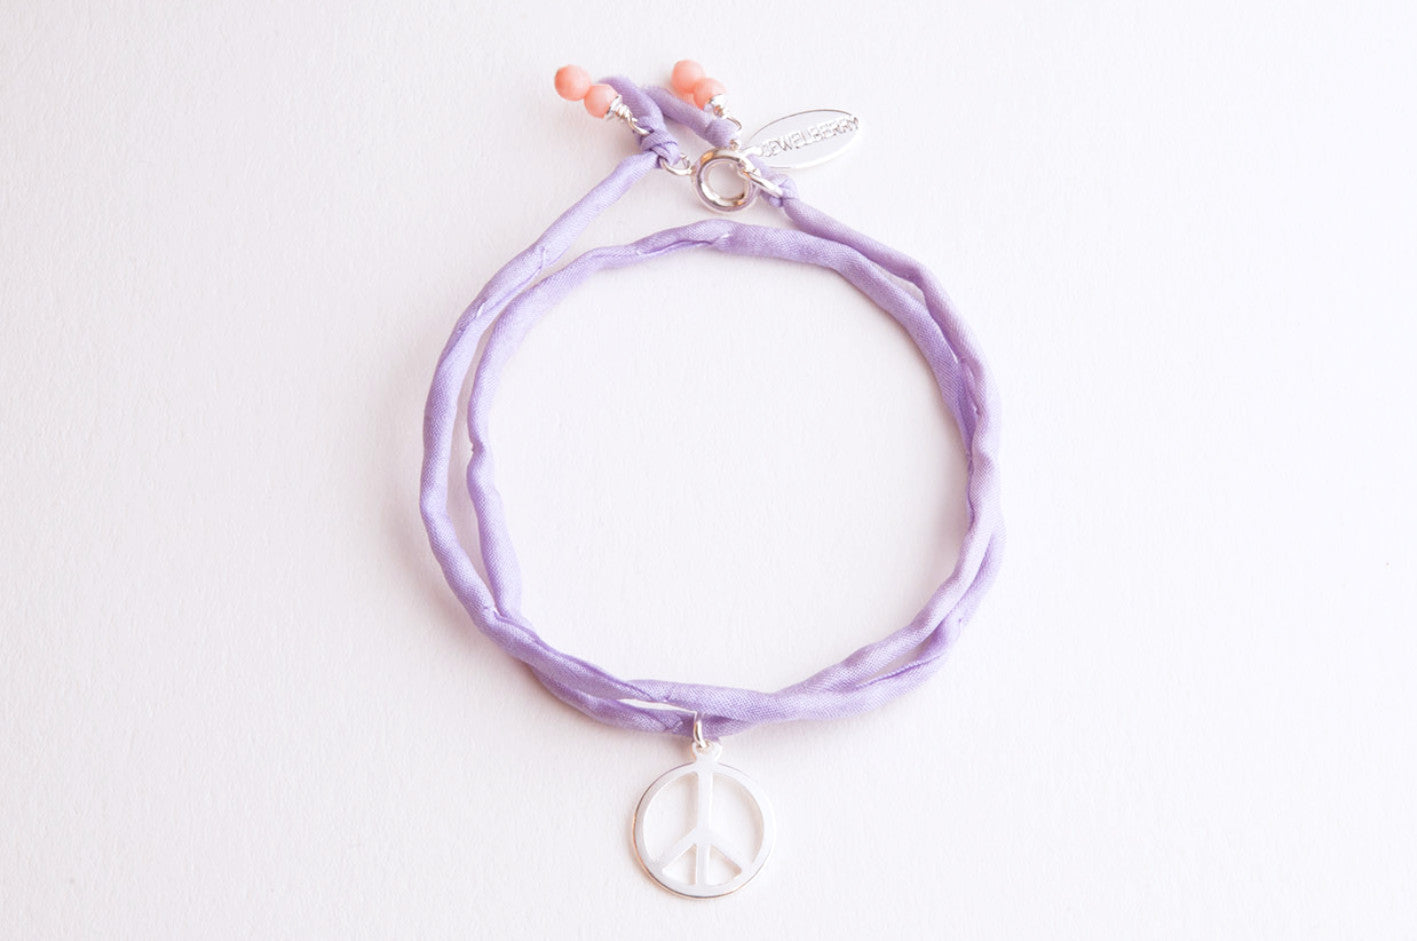 Charity Armband Jewelberry for Almaterra PEACE versilbert